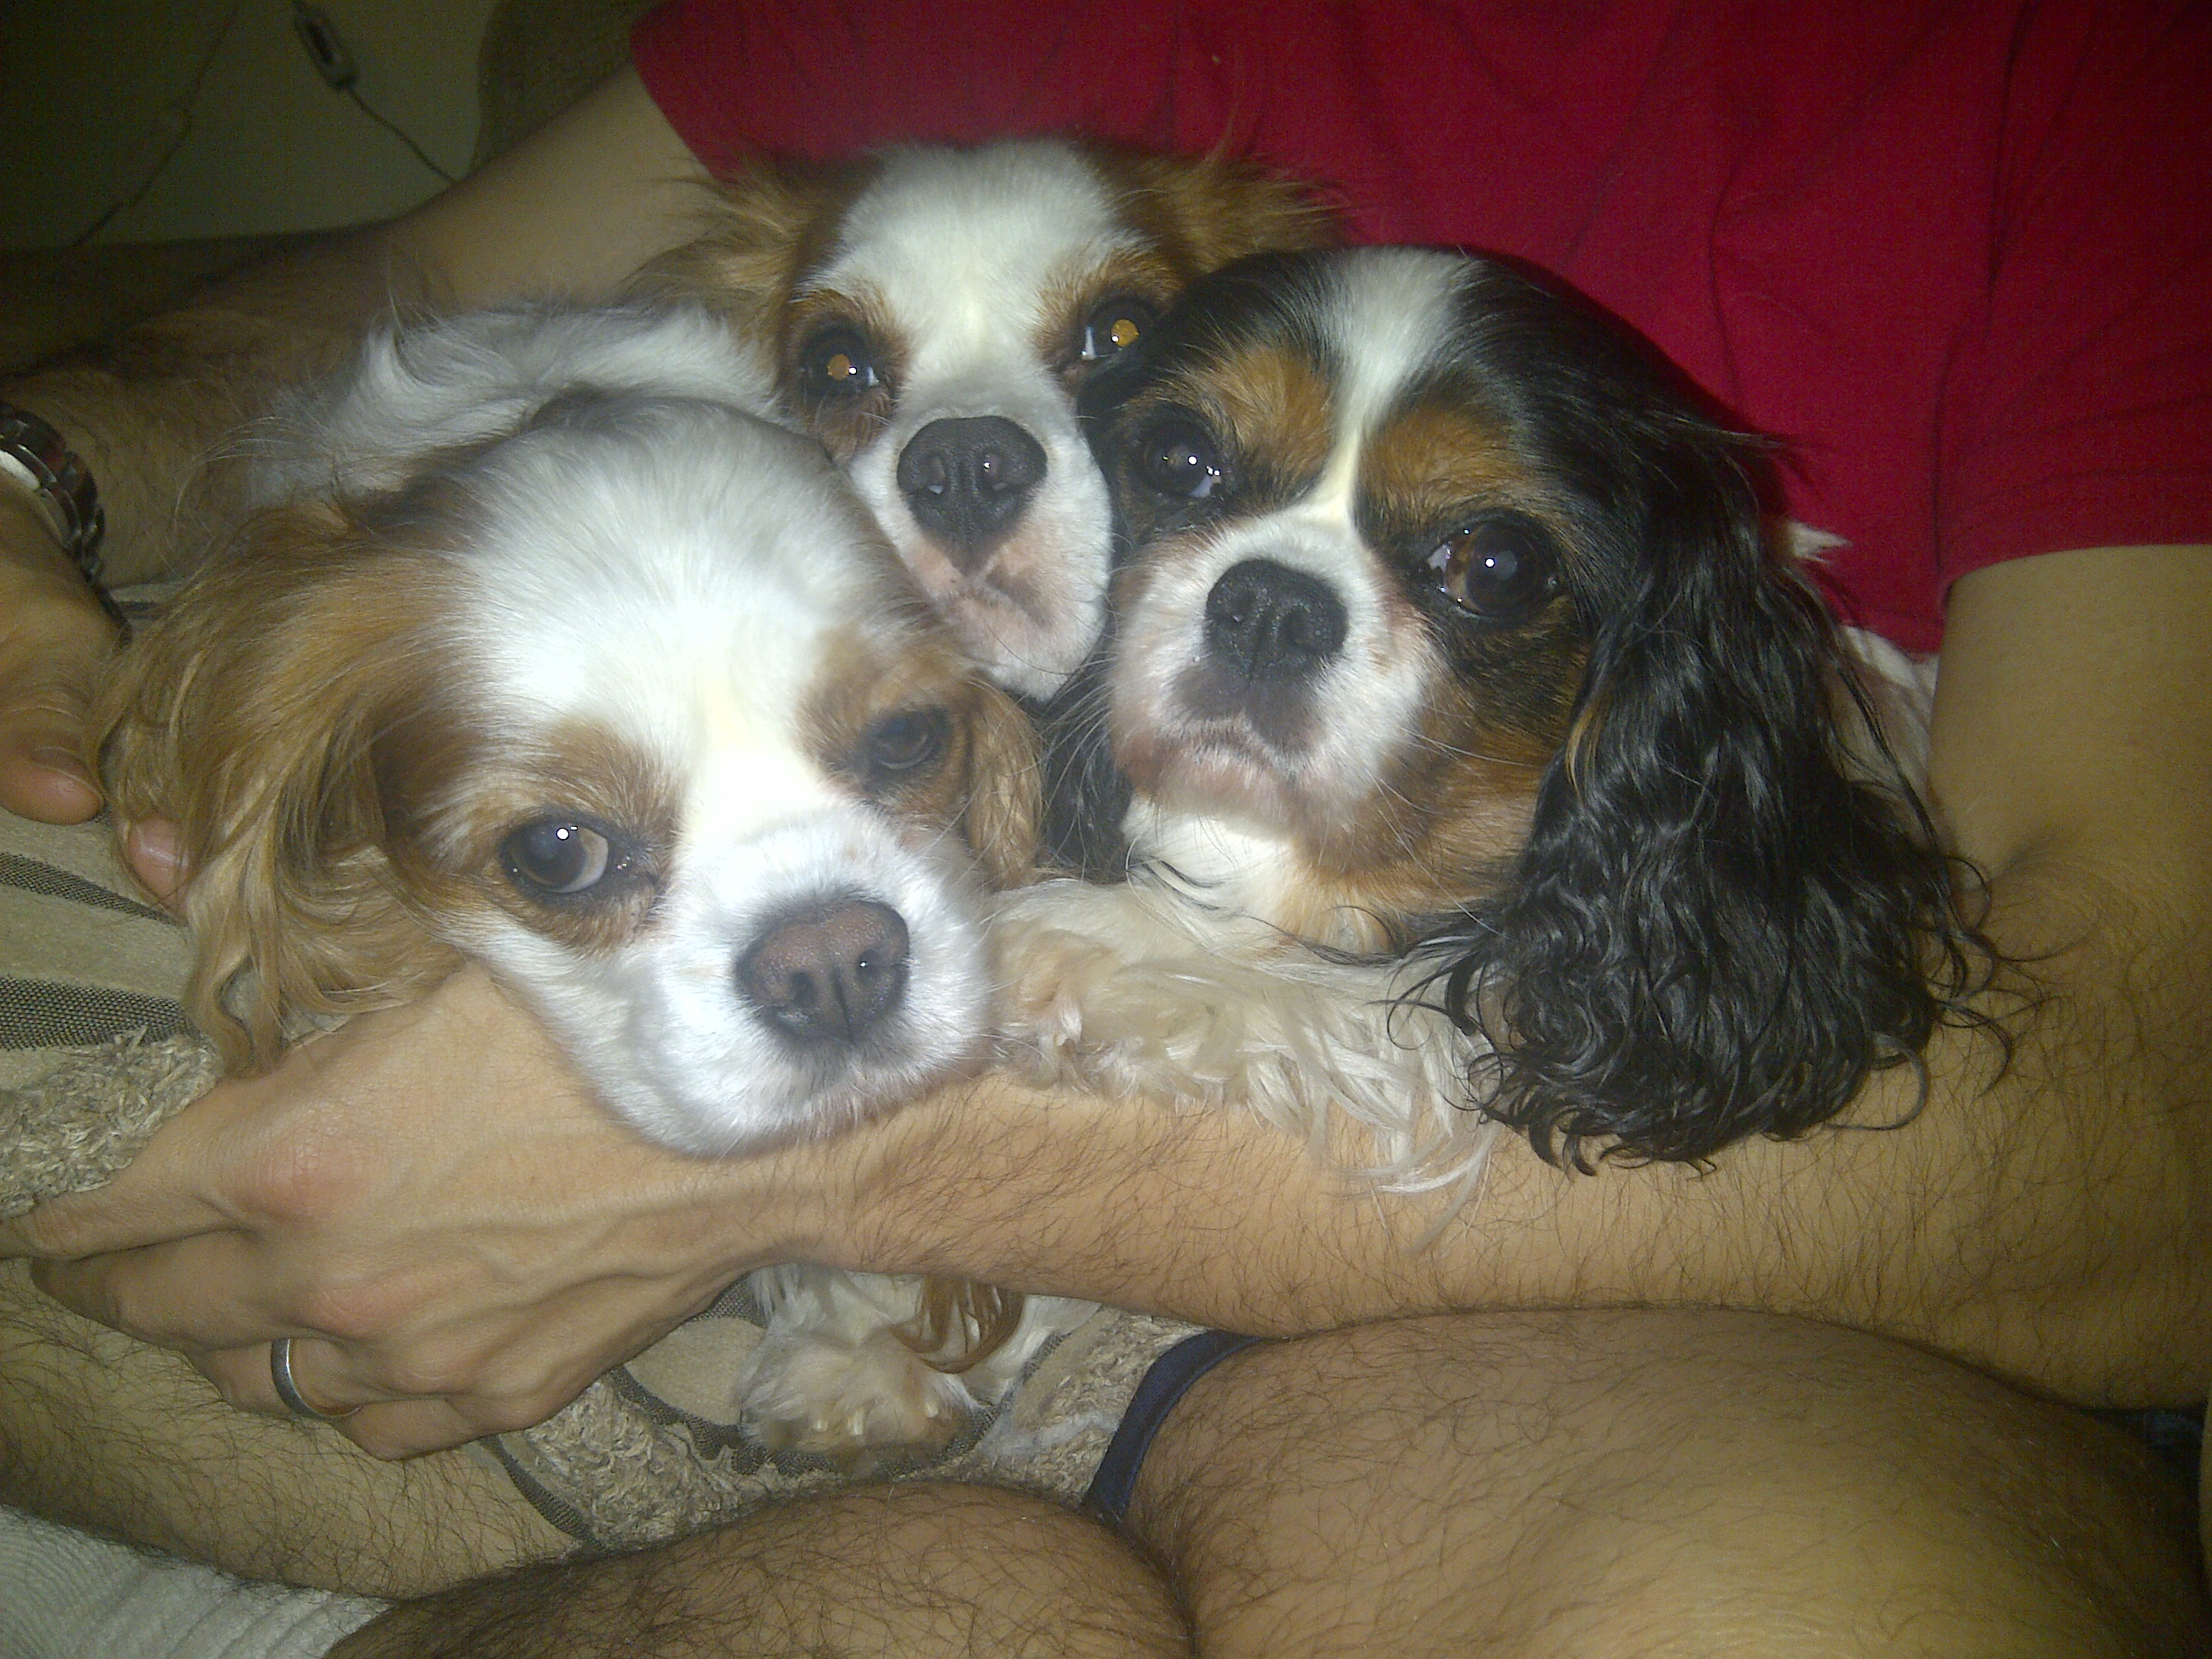 Gus, Sam (middle), and Daisy